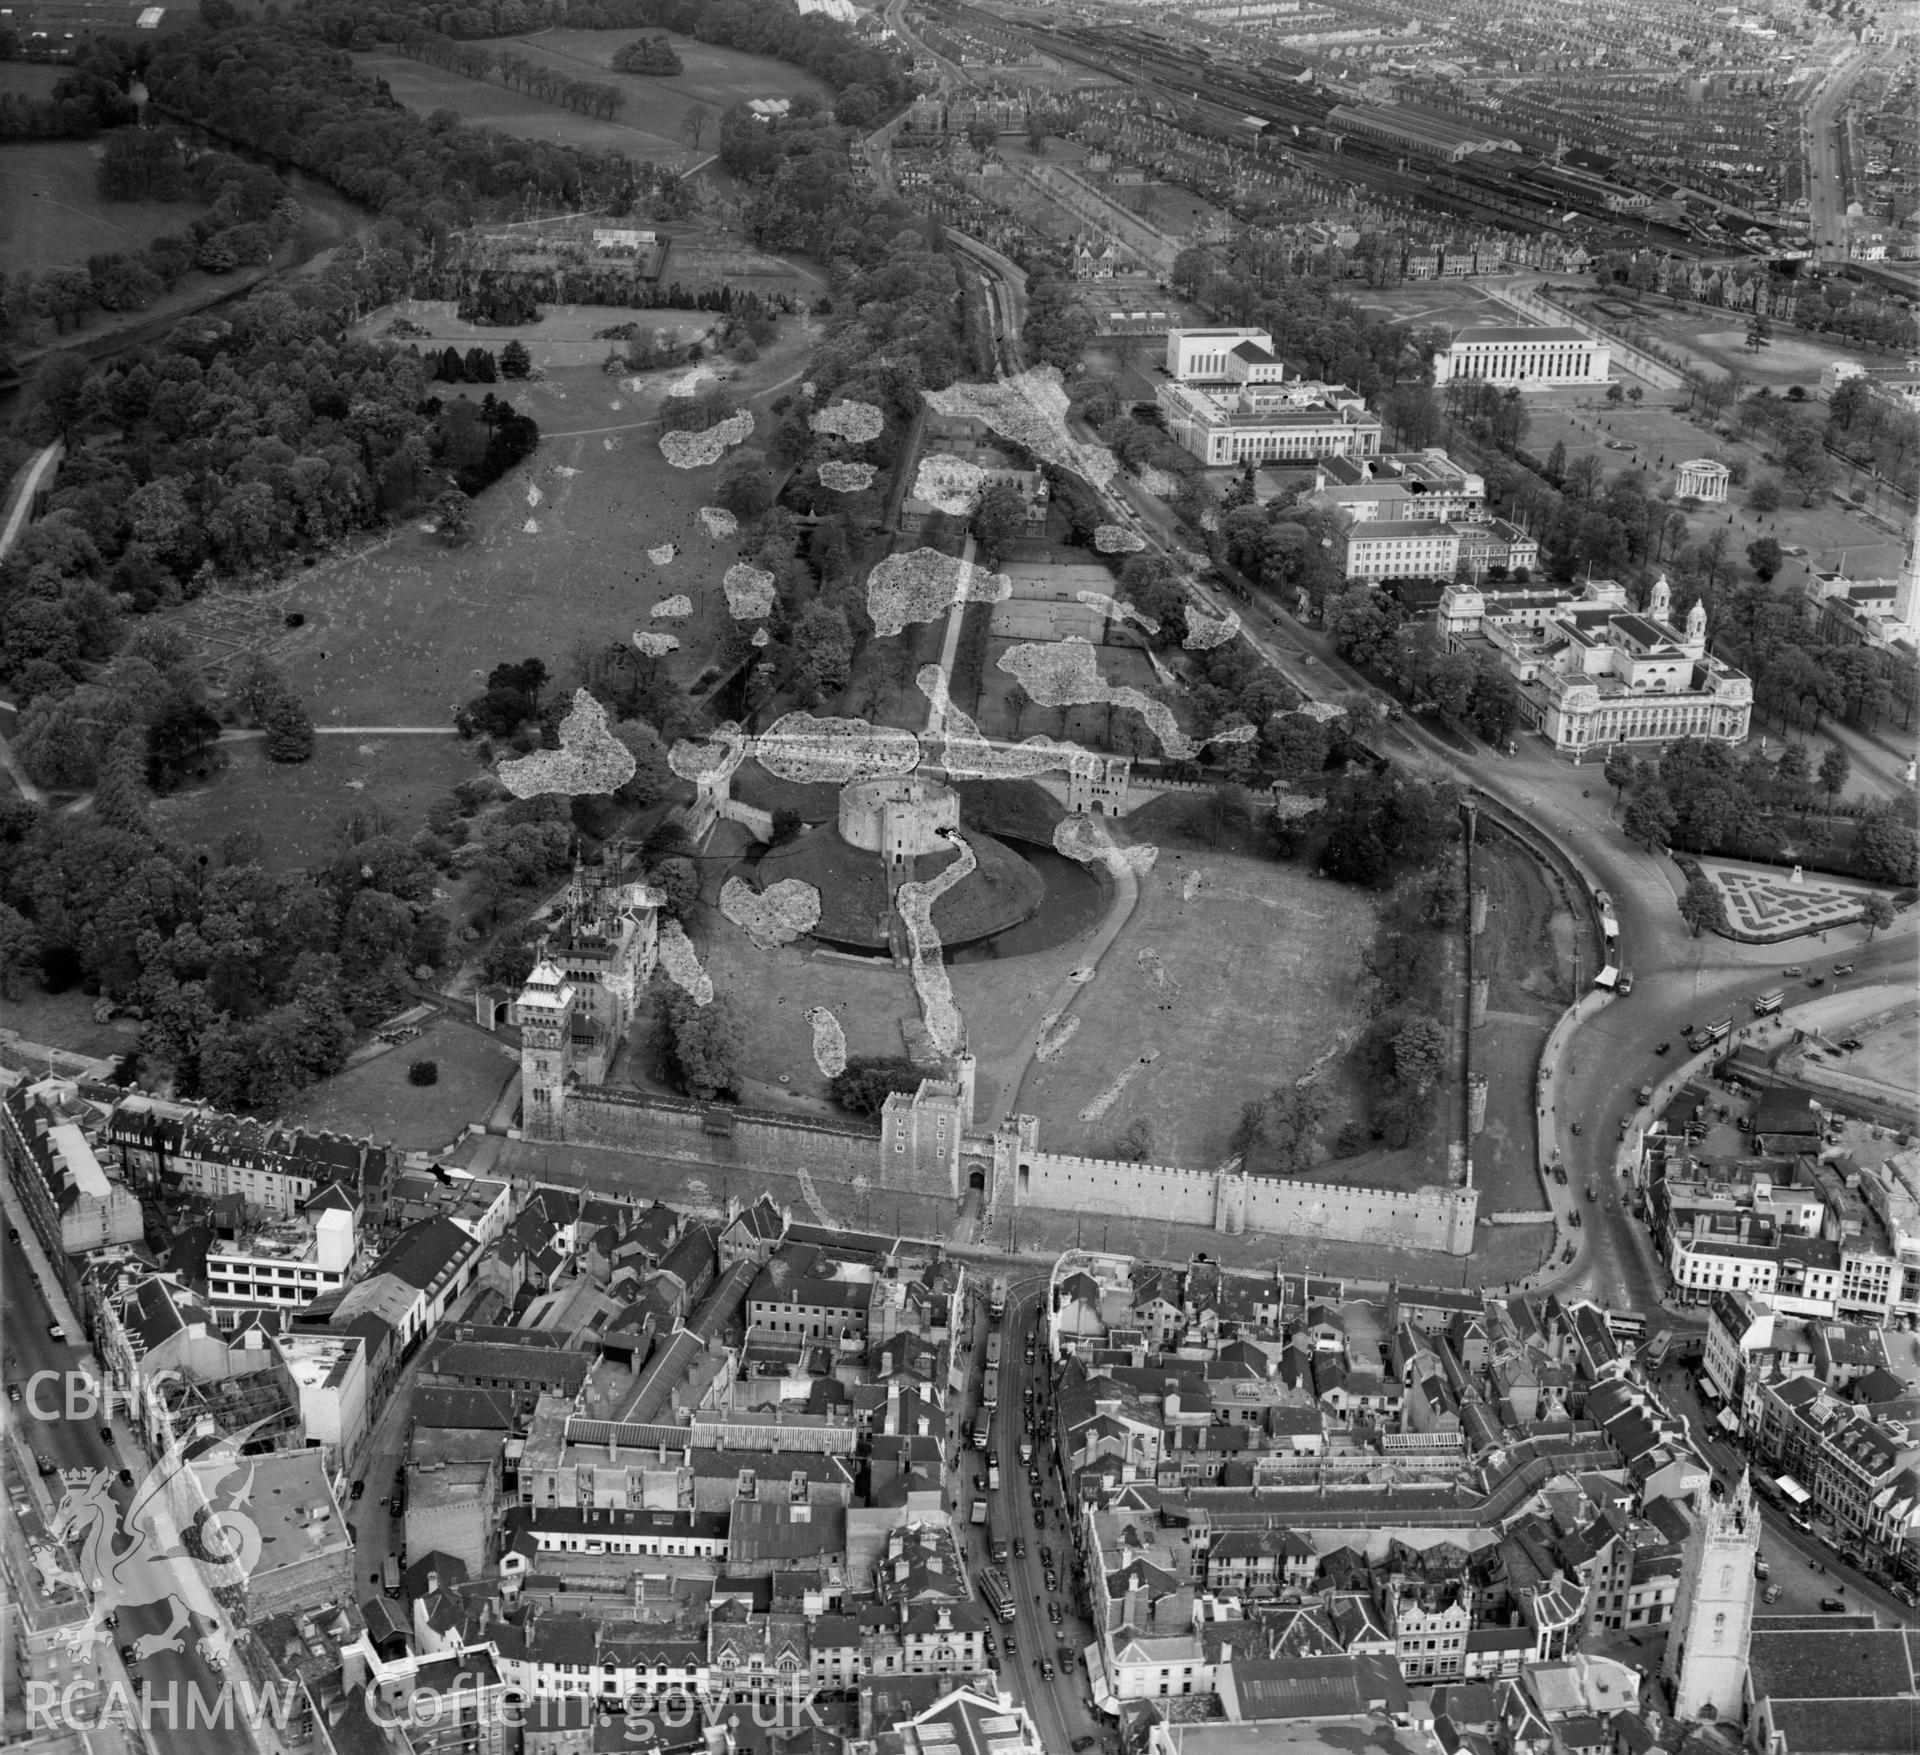 View of Cardiff showing the castle